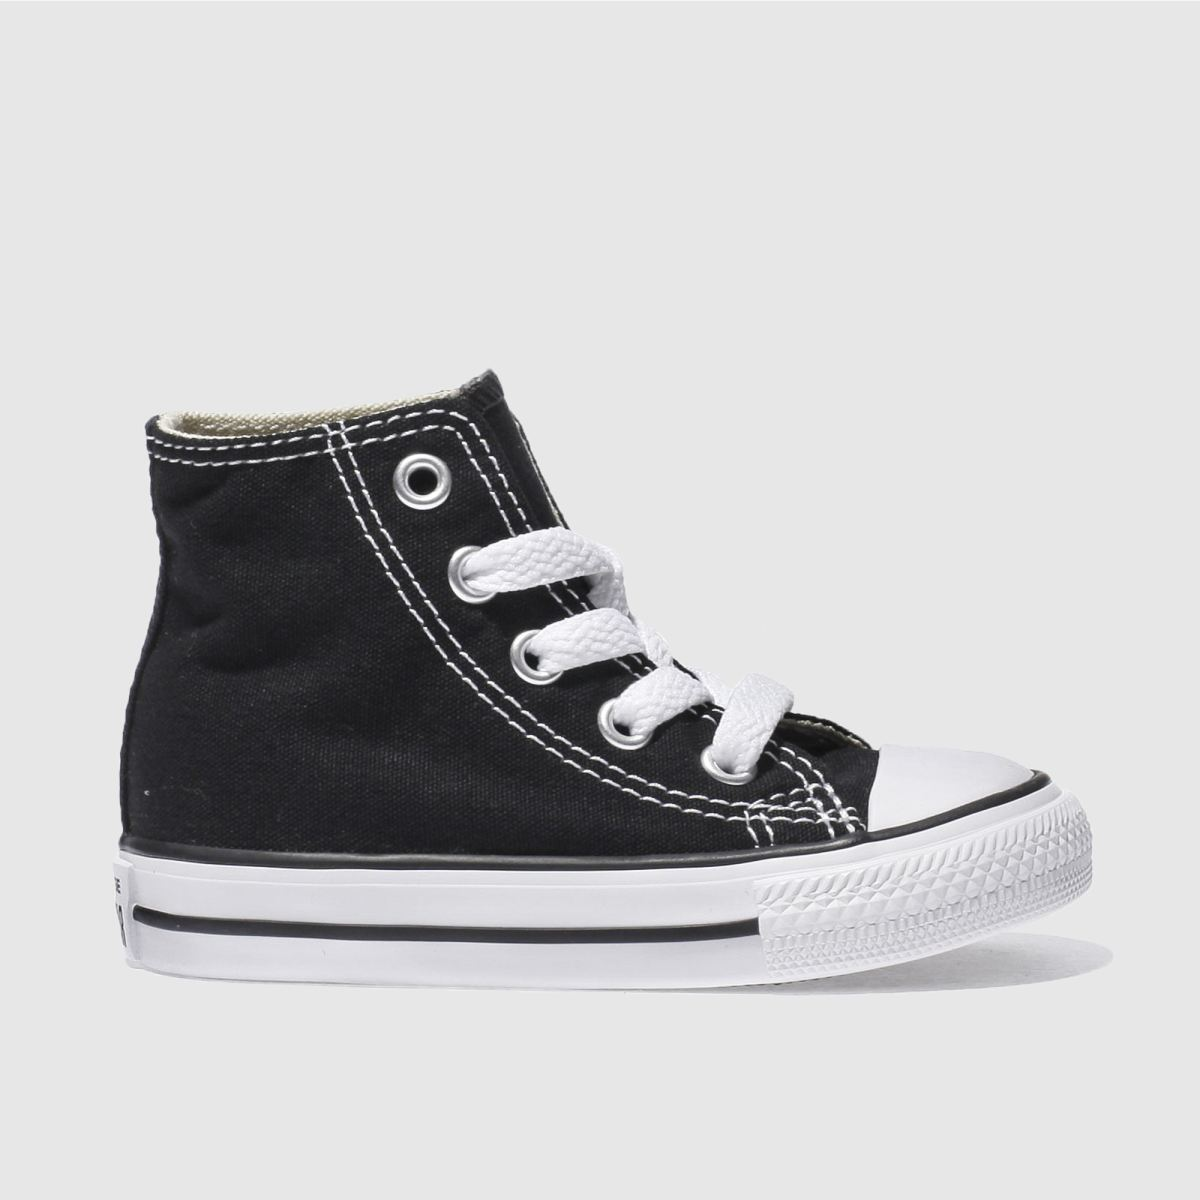 converse black all star hi Boys Toddler Trainers